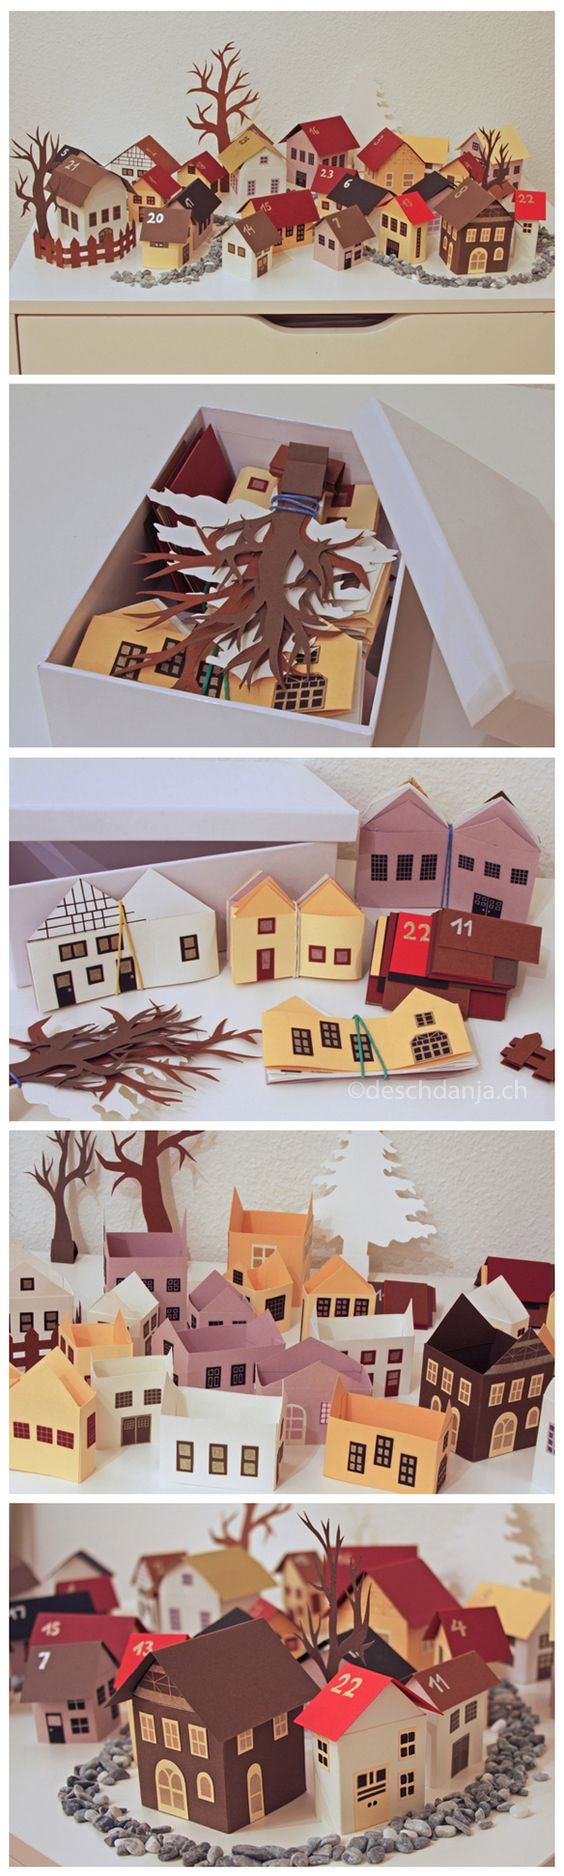 advent calendar consists of 24 little houses made out of paper. They can be easily folded flat for storage. www.deschdanja.ch